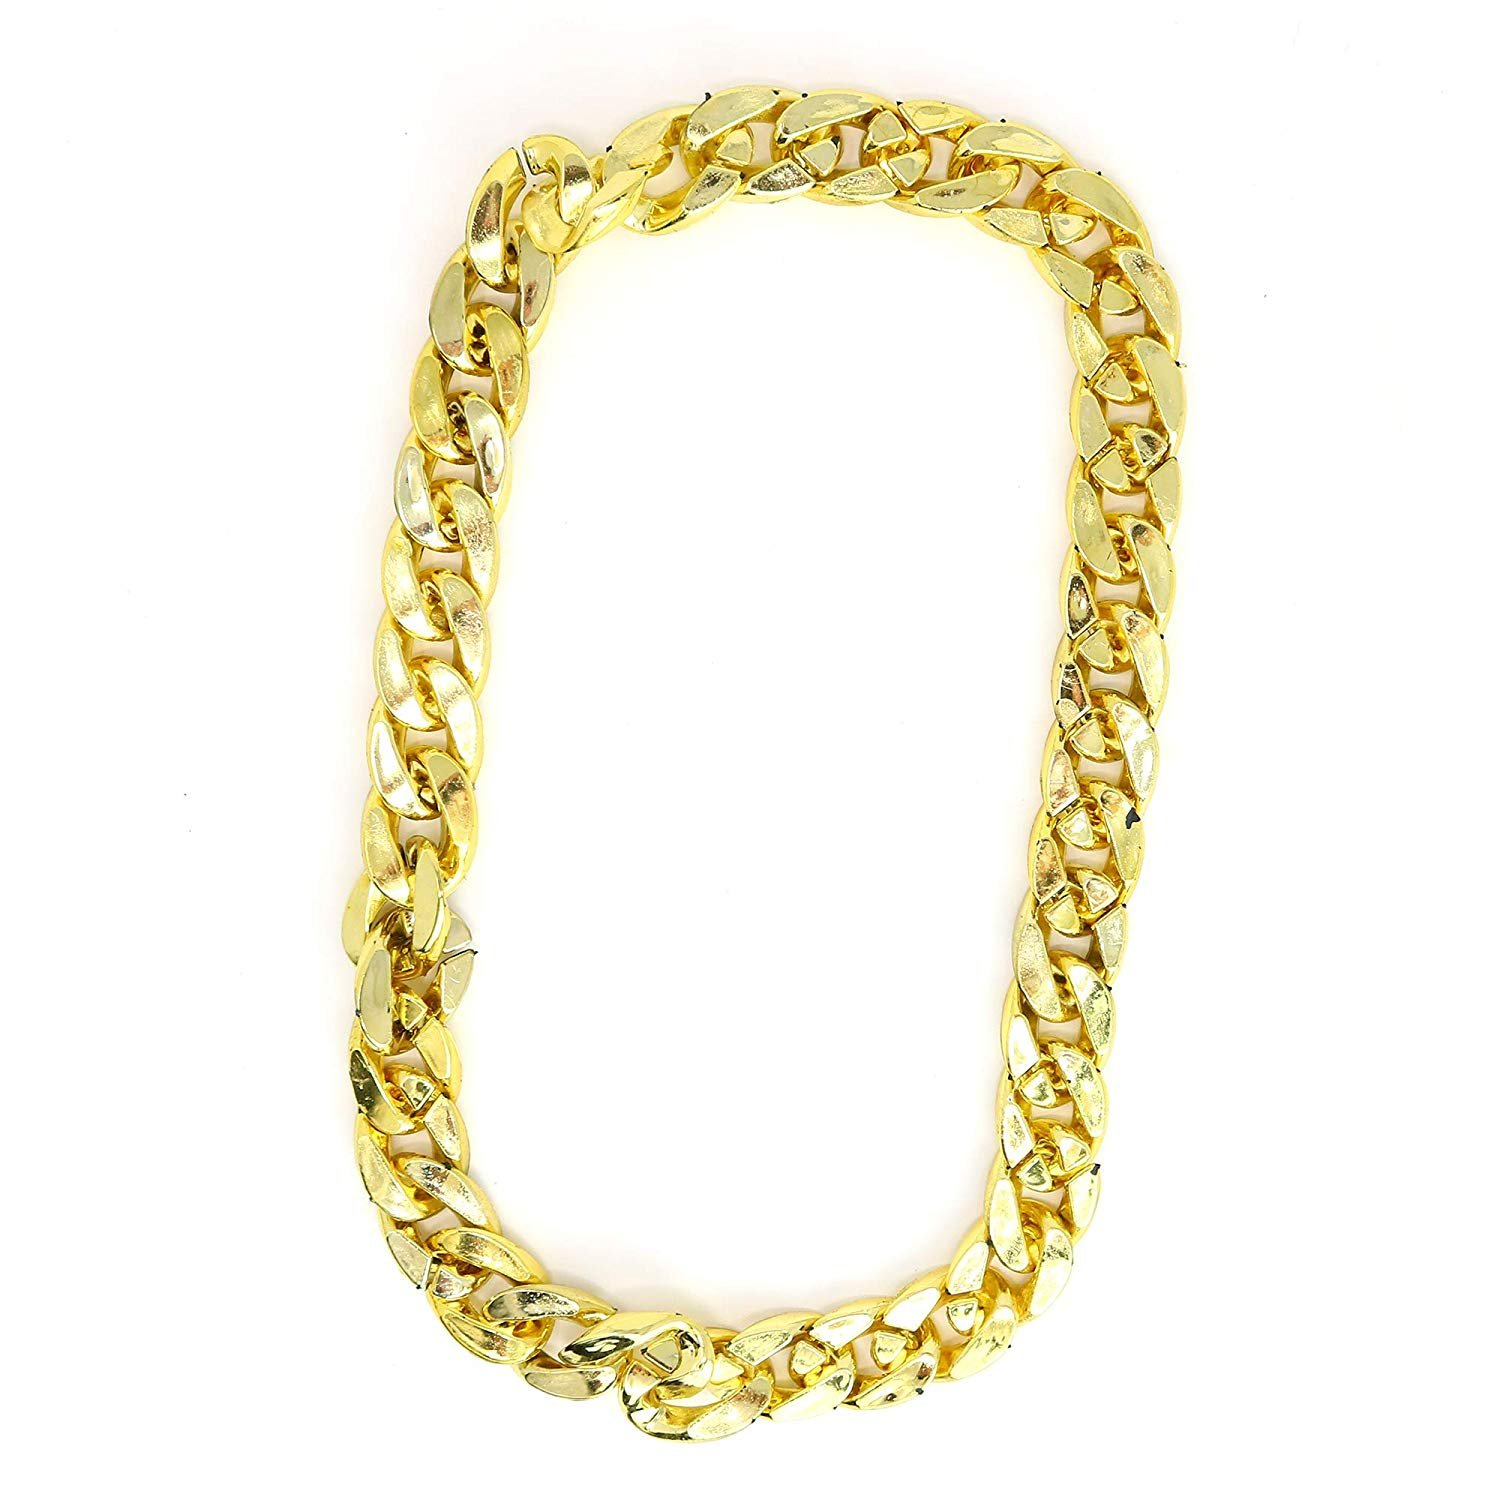 Skeleteen Rapper Gold Chain Accessory - 90s Hip Hop Fake ...